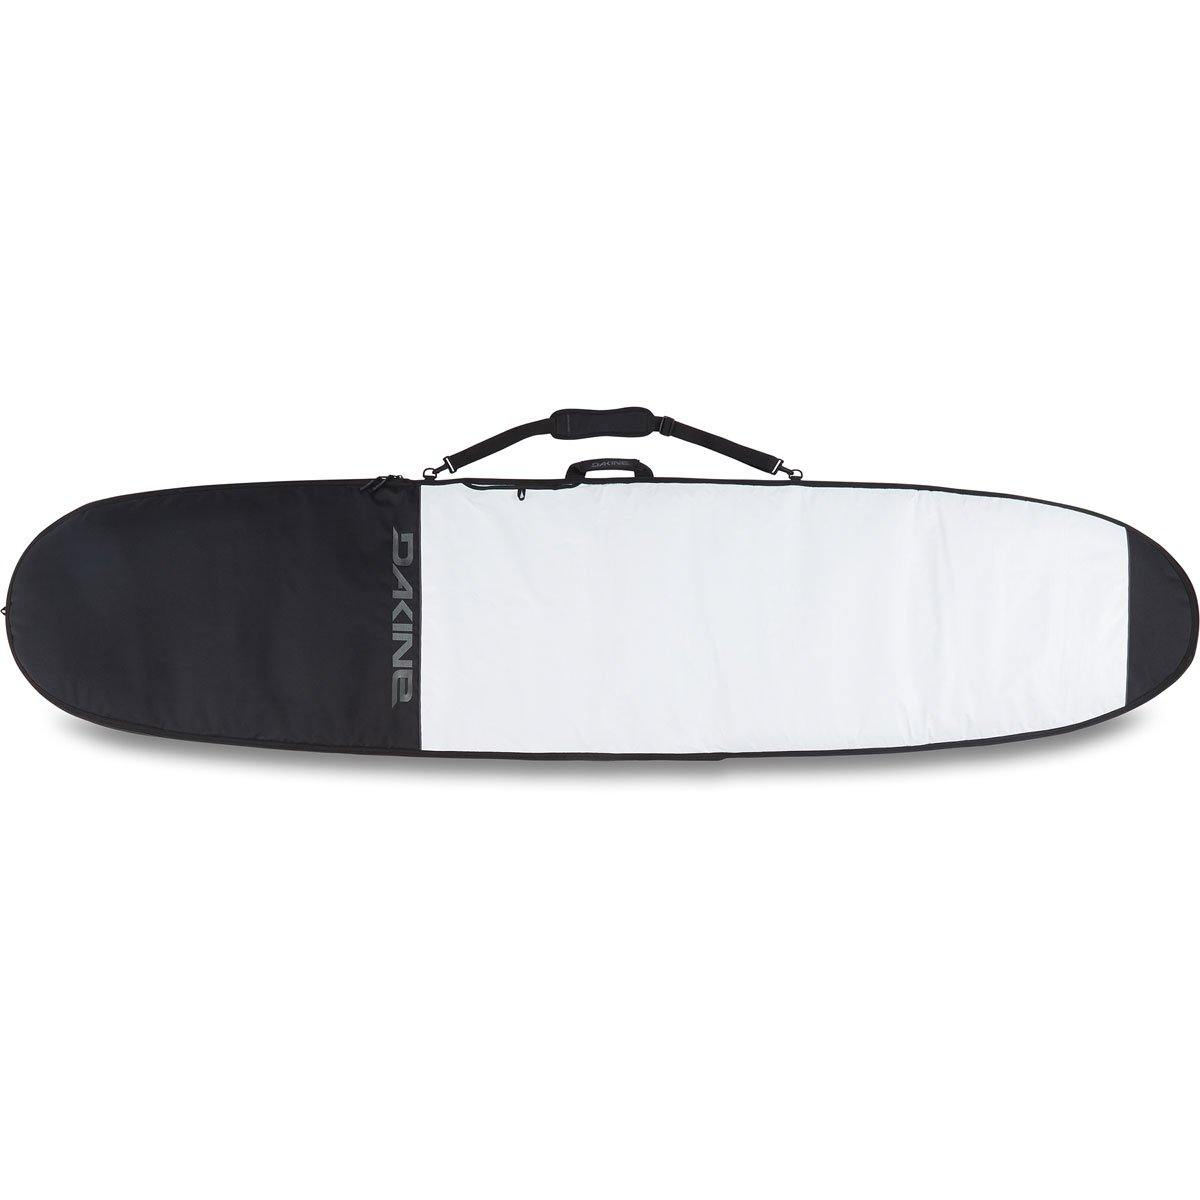 "7'6"" Dakine Daylight Noserider Surfboard Bag"